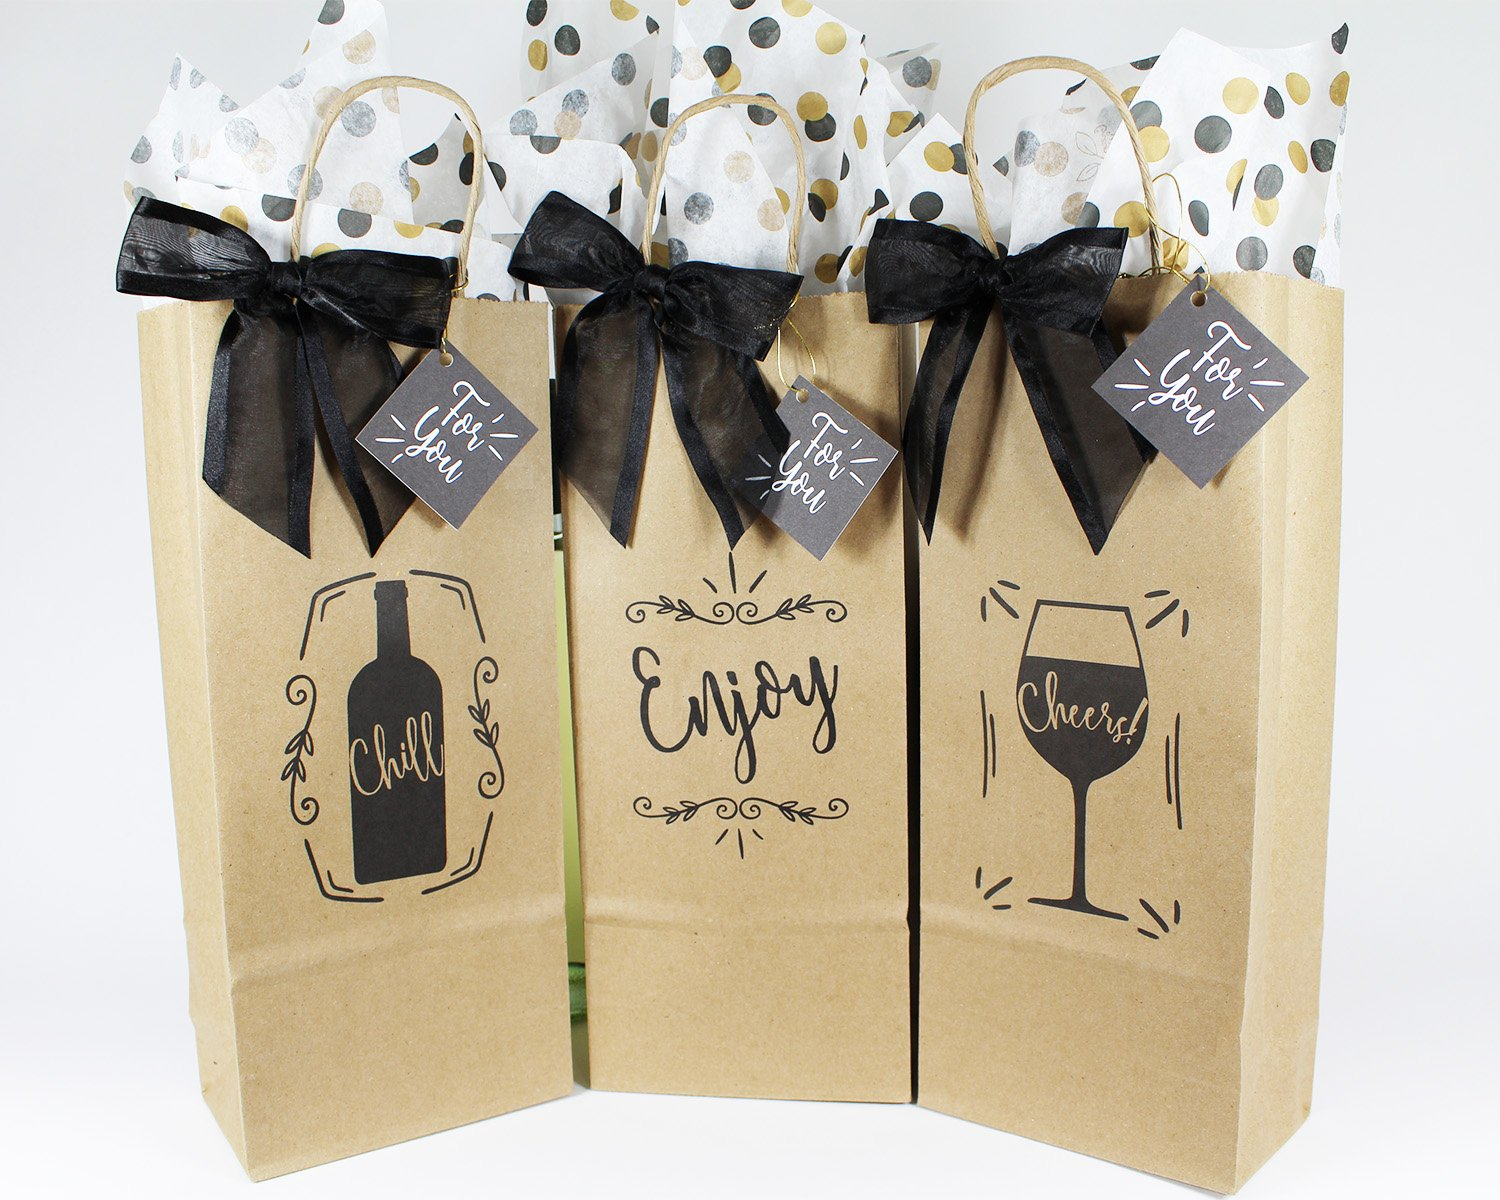 Wine Bottle Gift Bags For All Occasions Set Of 6 Includes Tissue Paper Gift Tag And Twist Tie Bow Bags Made In Usa Of 100 Recyclable Materials